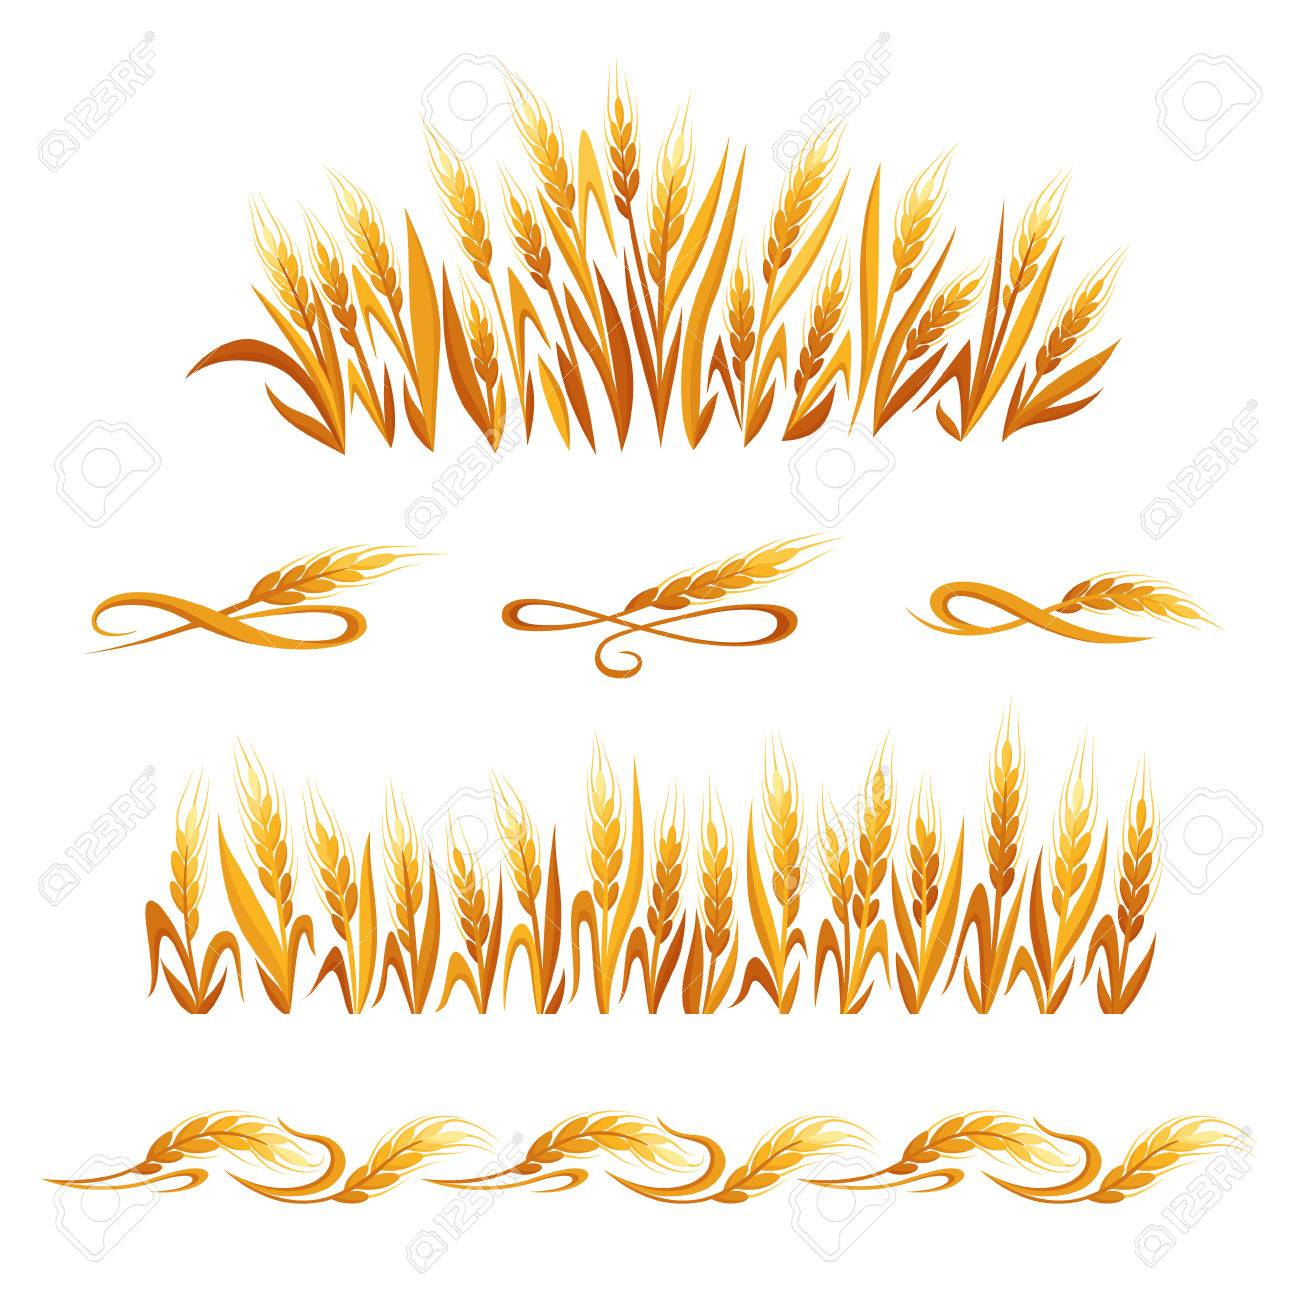 Wheat Ears Decorations Cereal Spikelets Symbols Isolated On White